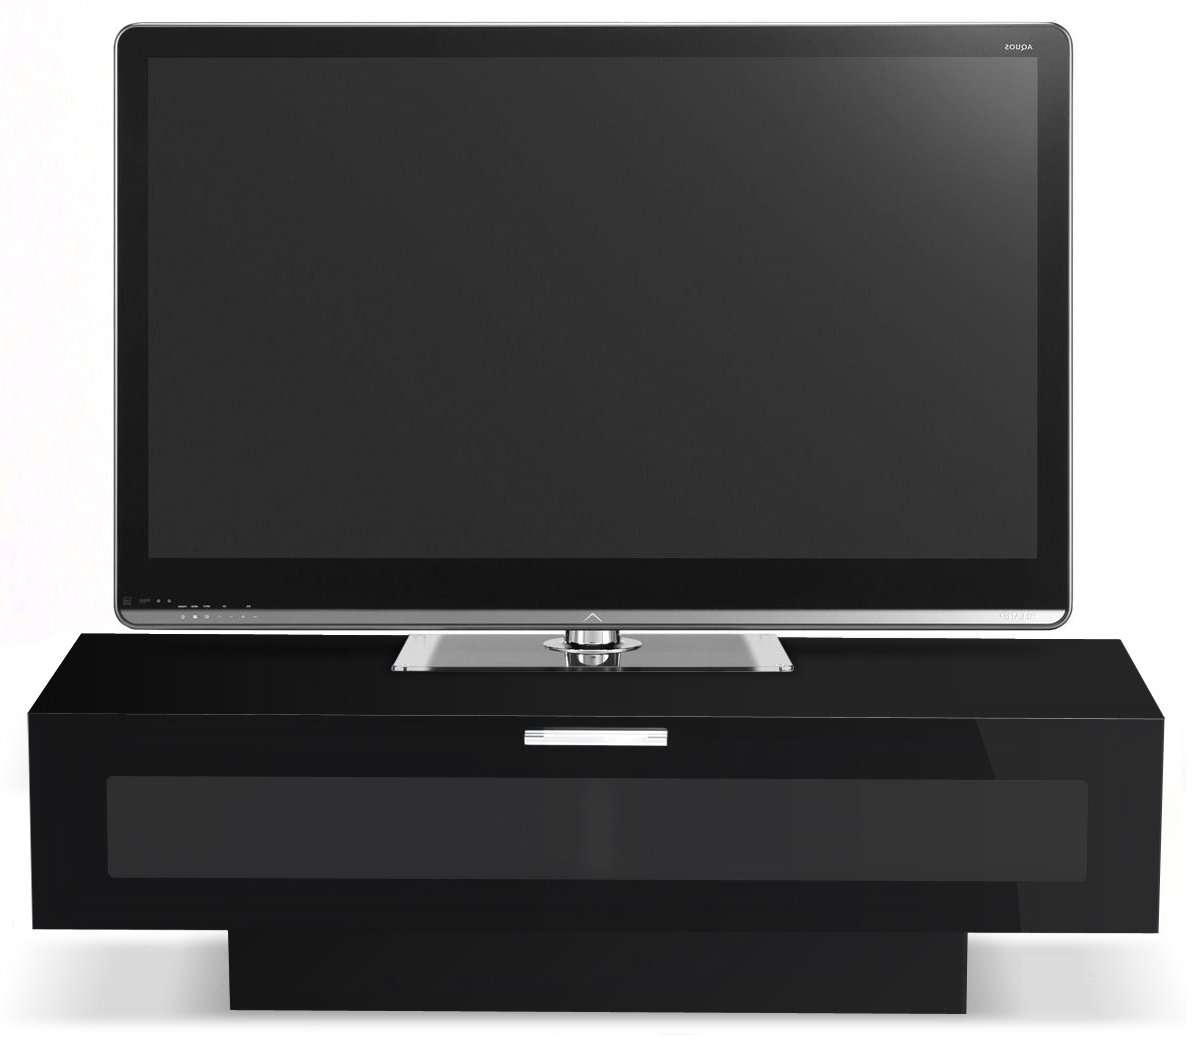 Stil Stand Stuk 4001 Bl – 1 Tv Stands Throughout Stil Tv Stands (View 8 of 15)